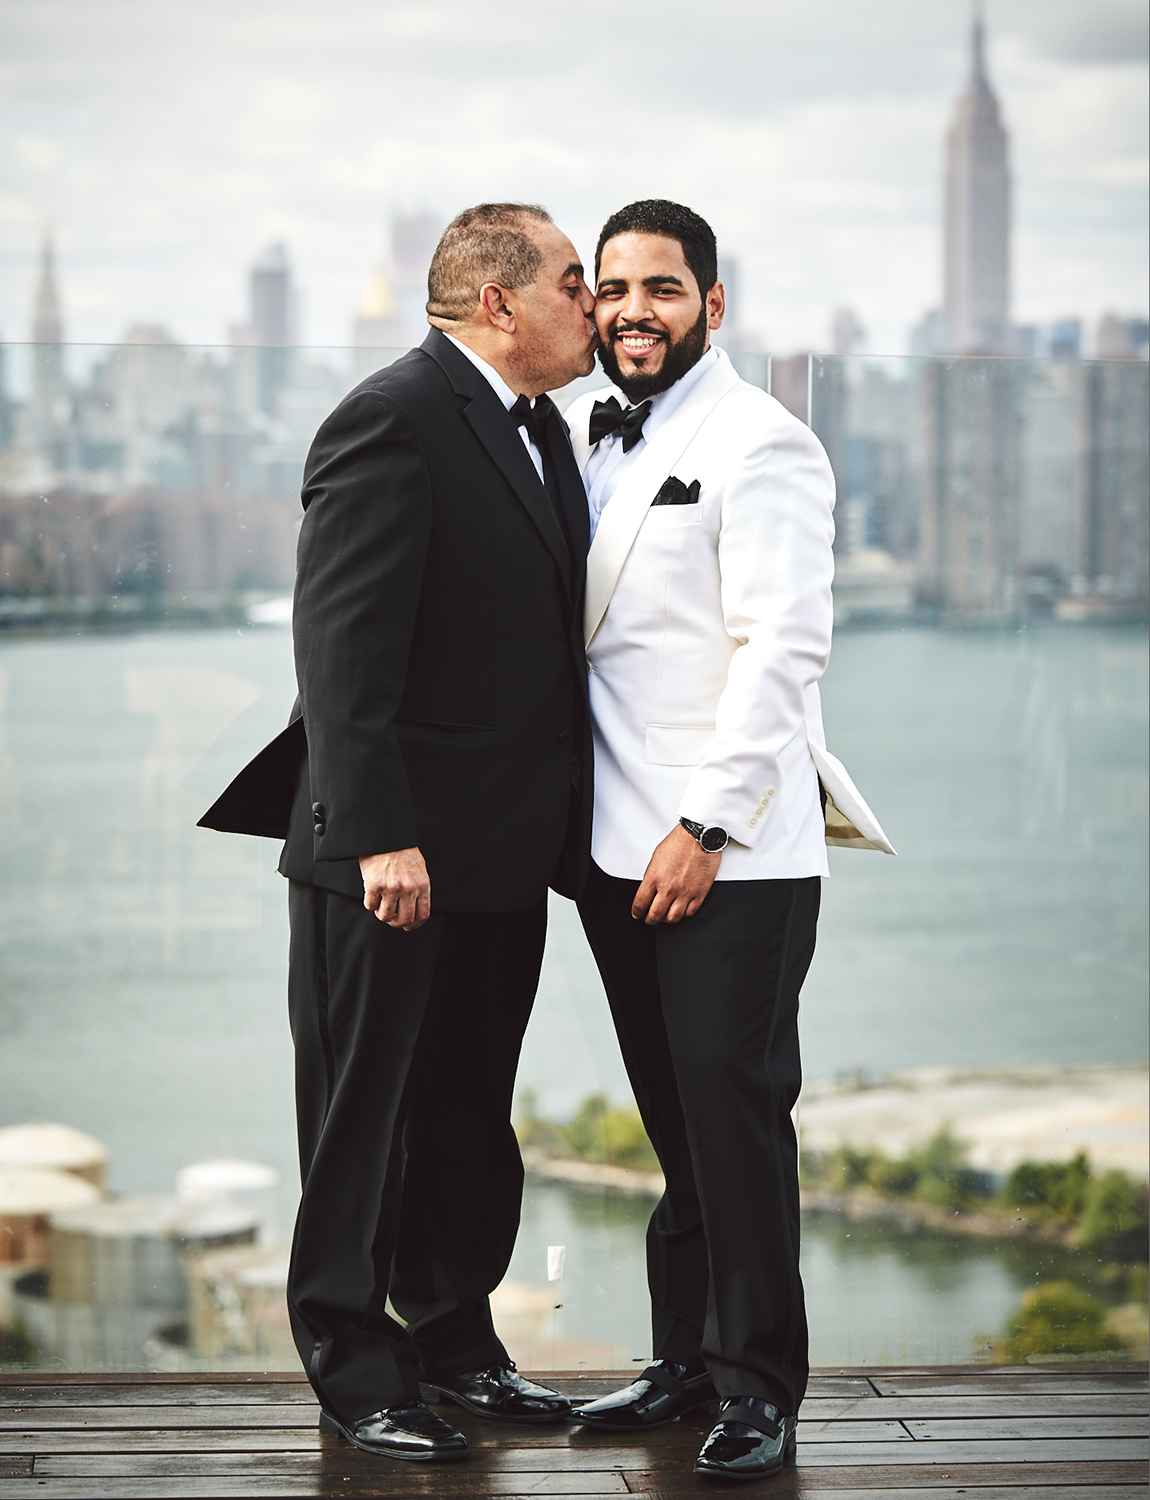 170930_WilliamValeWeddingPhotography_BrooklynWeddingPhotographer_By_BriJohnsonWeddings_0017.jpg